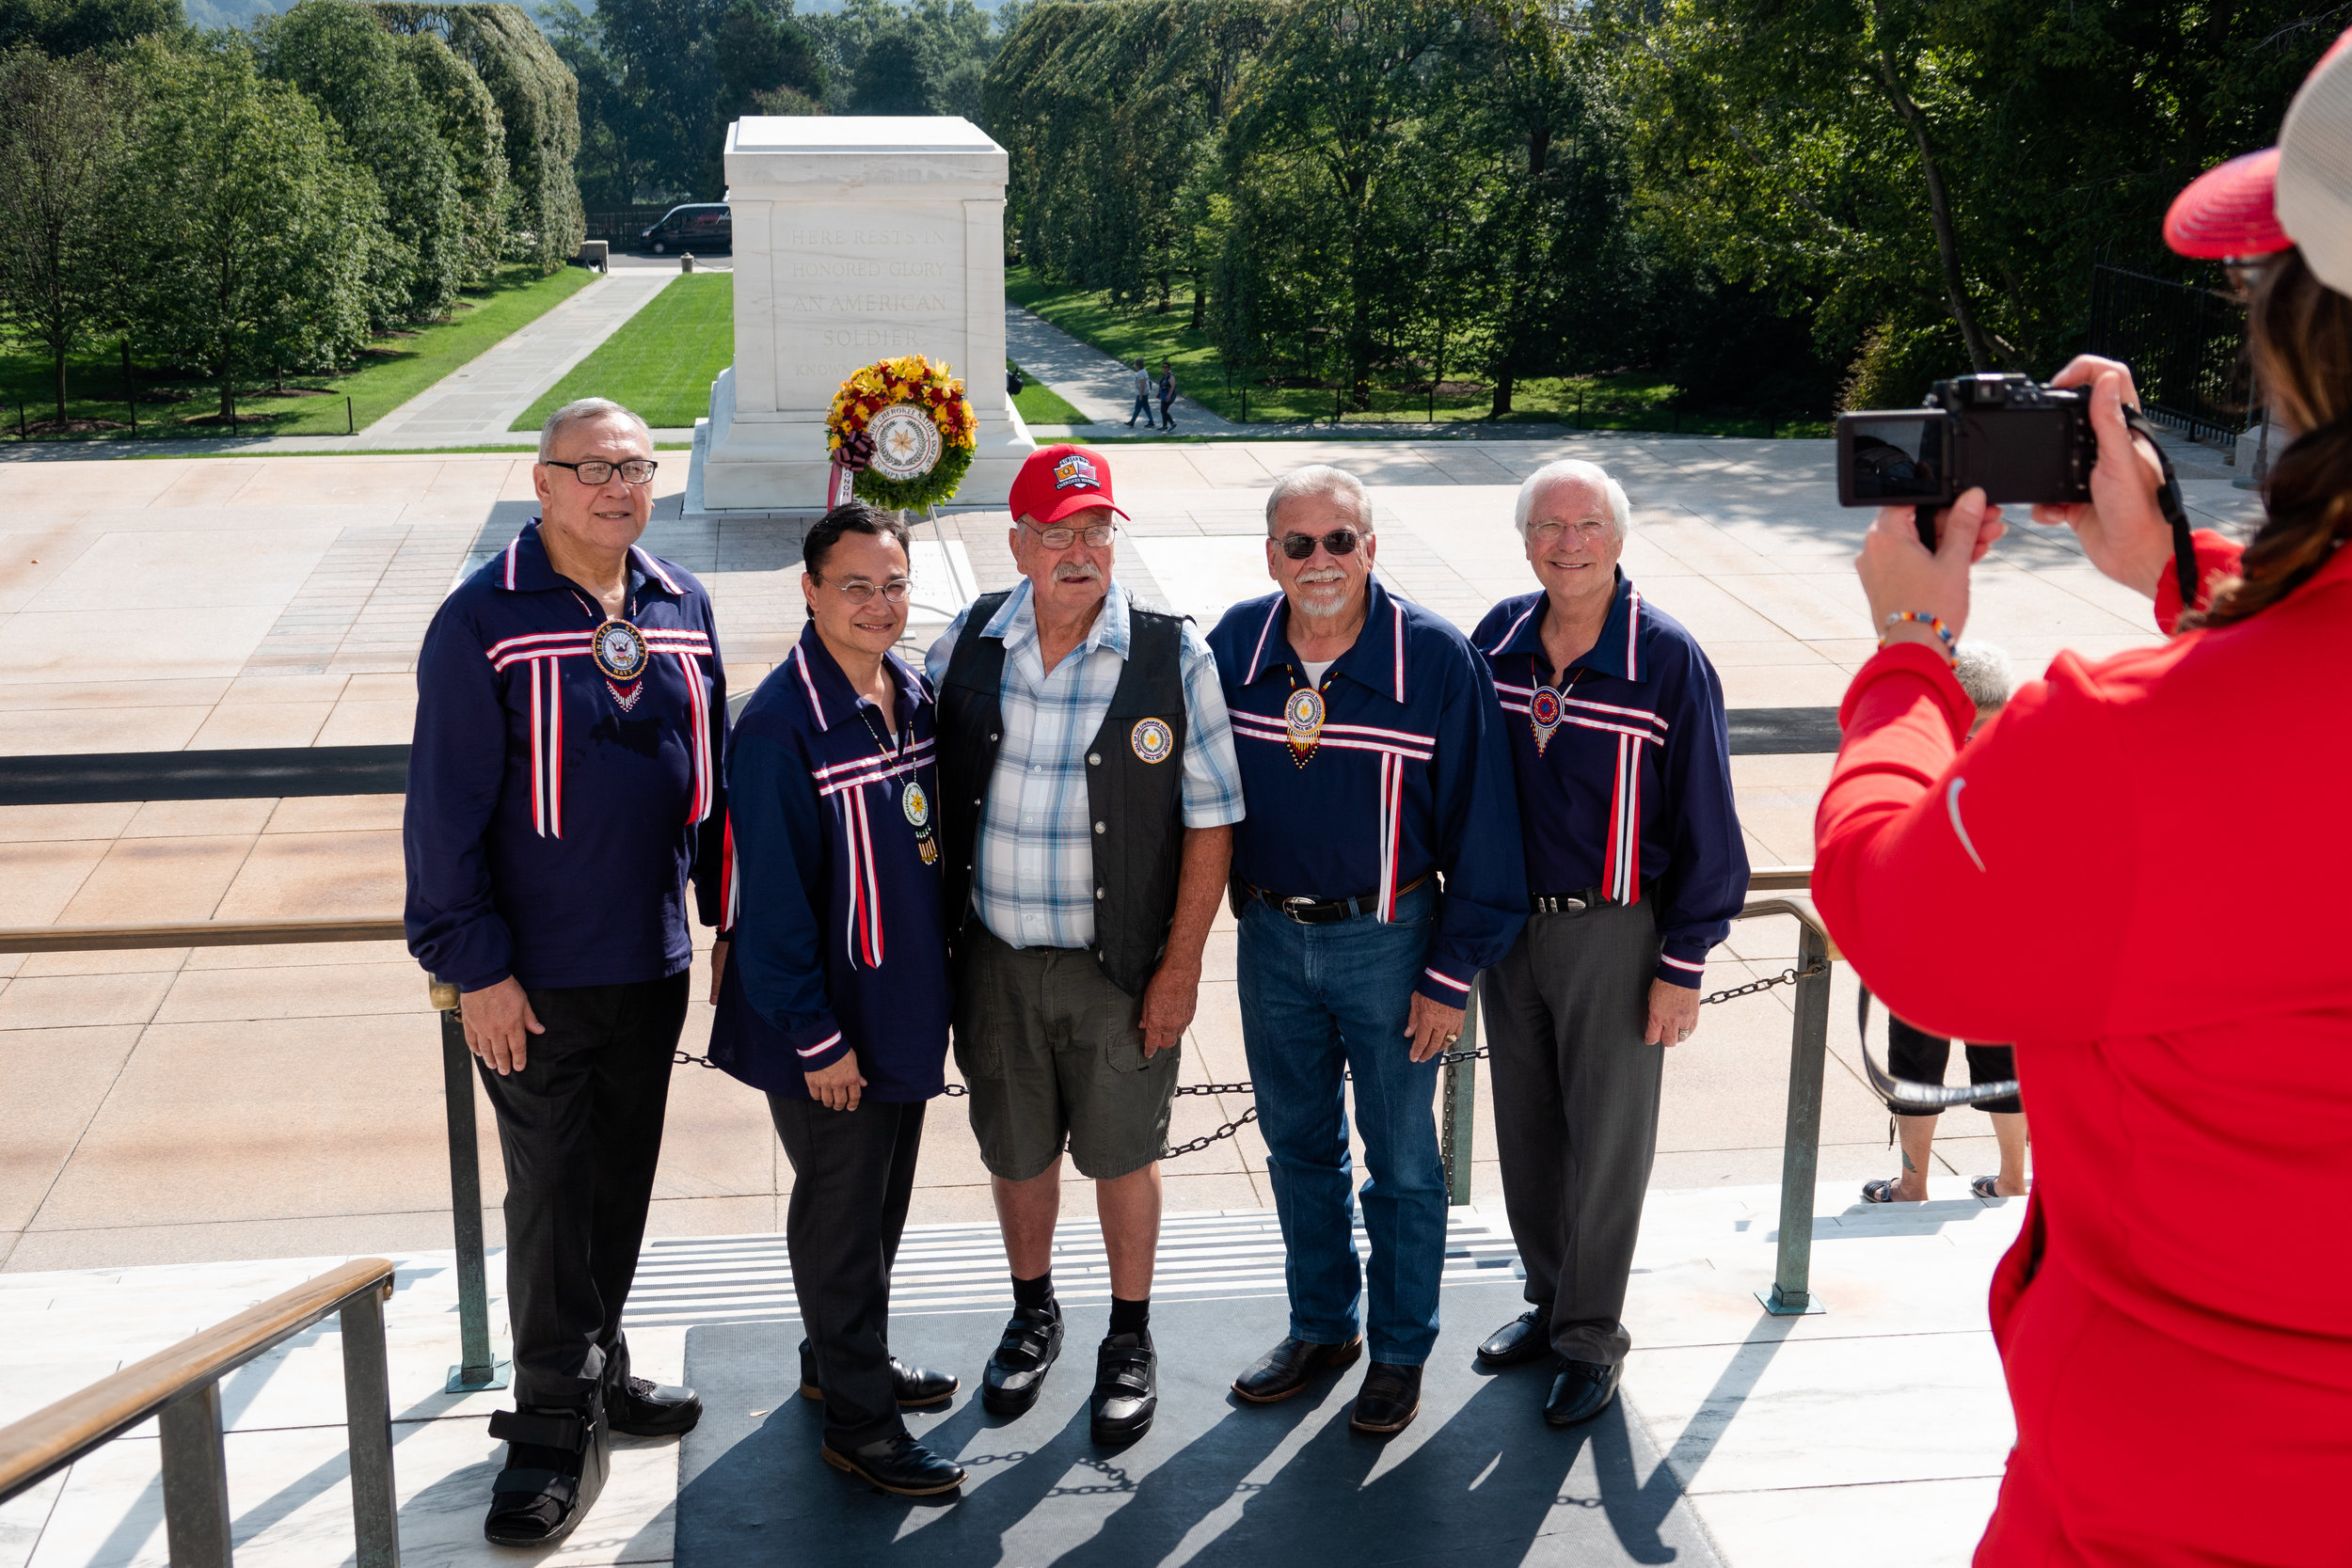 Members of Cherokee leadership pose for a photo with Korean War veteran Jimmie Routh in front of their wreath at the Tomb of the Unknown Soldier.